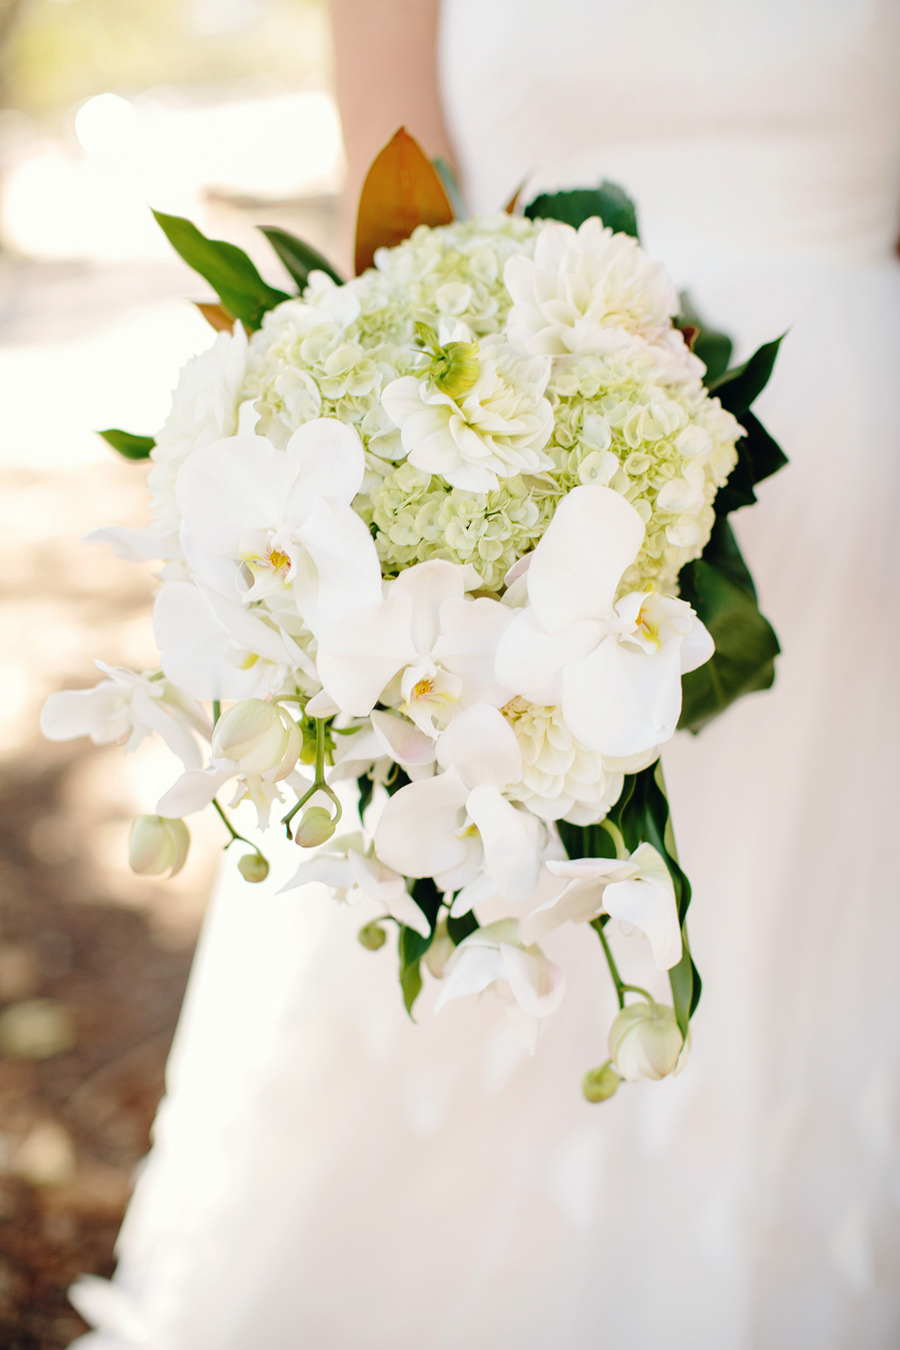 Timeless Wedding Photography: Bouquet